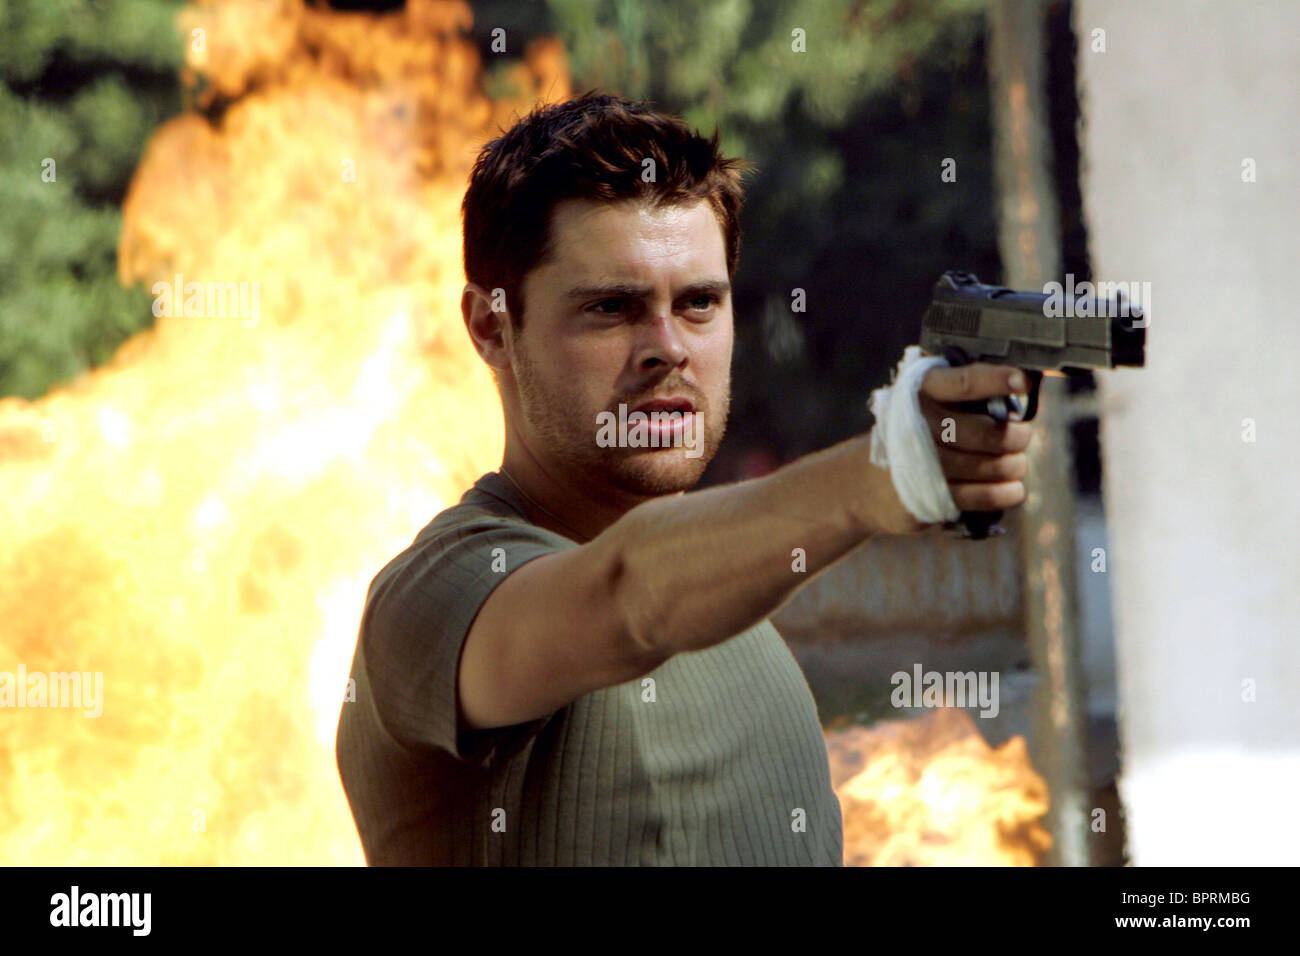 MATTHEW LEITCH THE DETONATOR (2006) - Stock Image